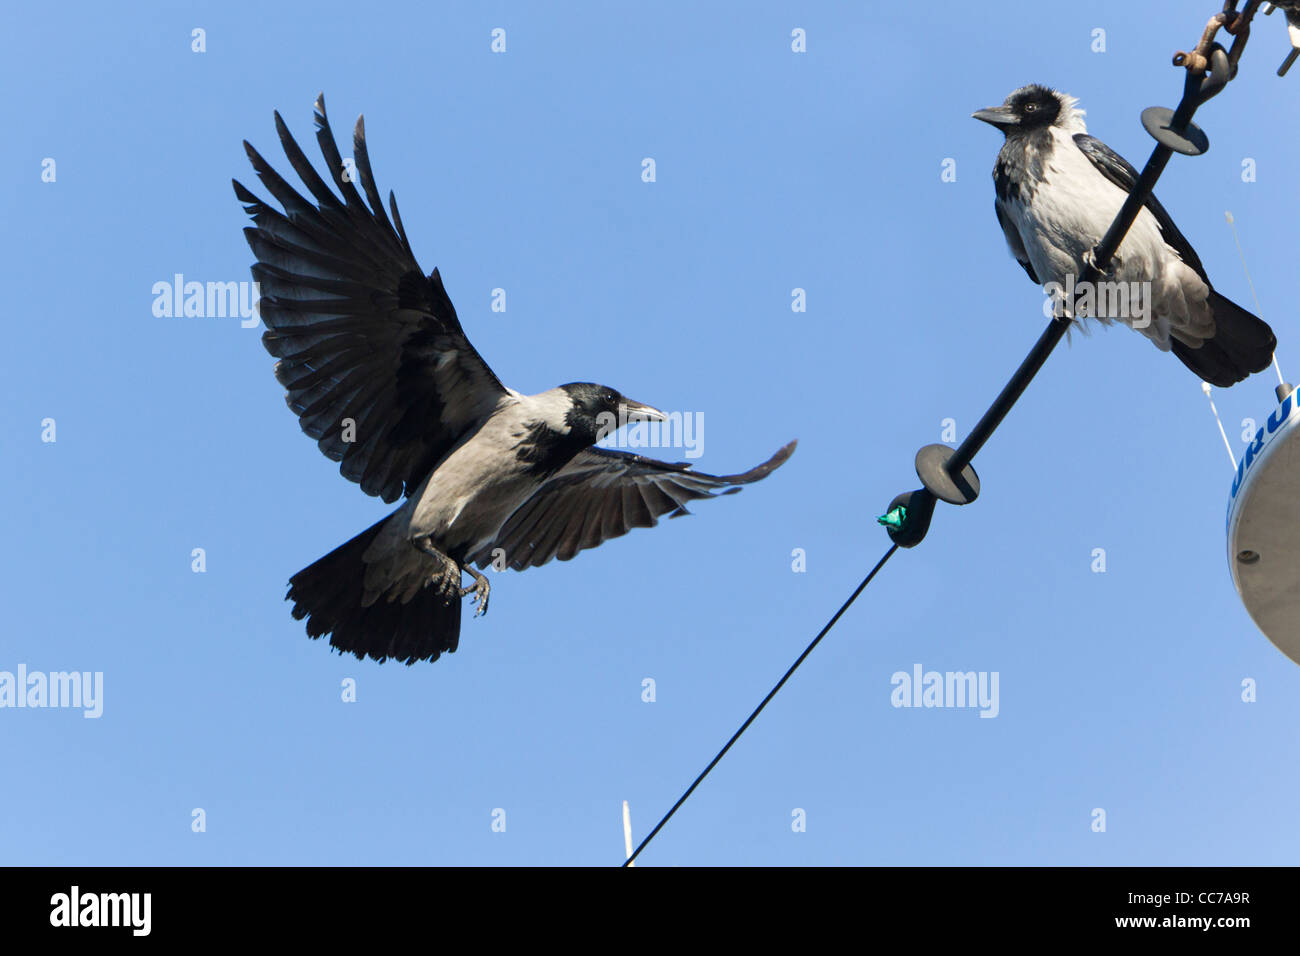 Hooded Crow (Corvus corone cornix), one Landing and the other Perched on Boat Rigging, Sjaelland, Gillelje Harbour, Stock Photo